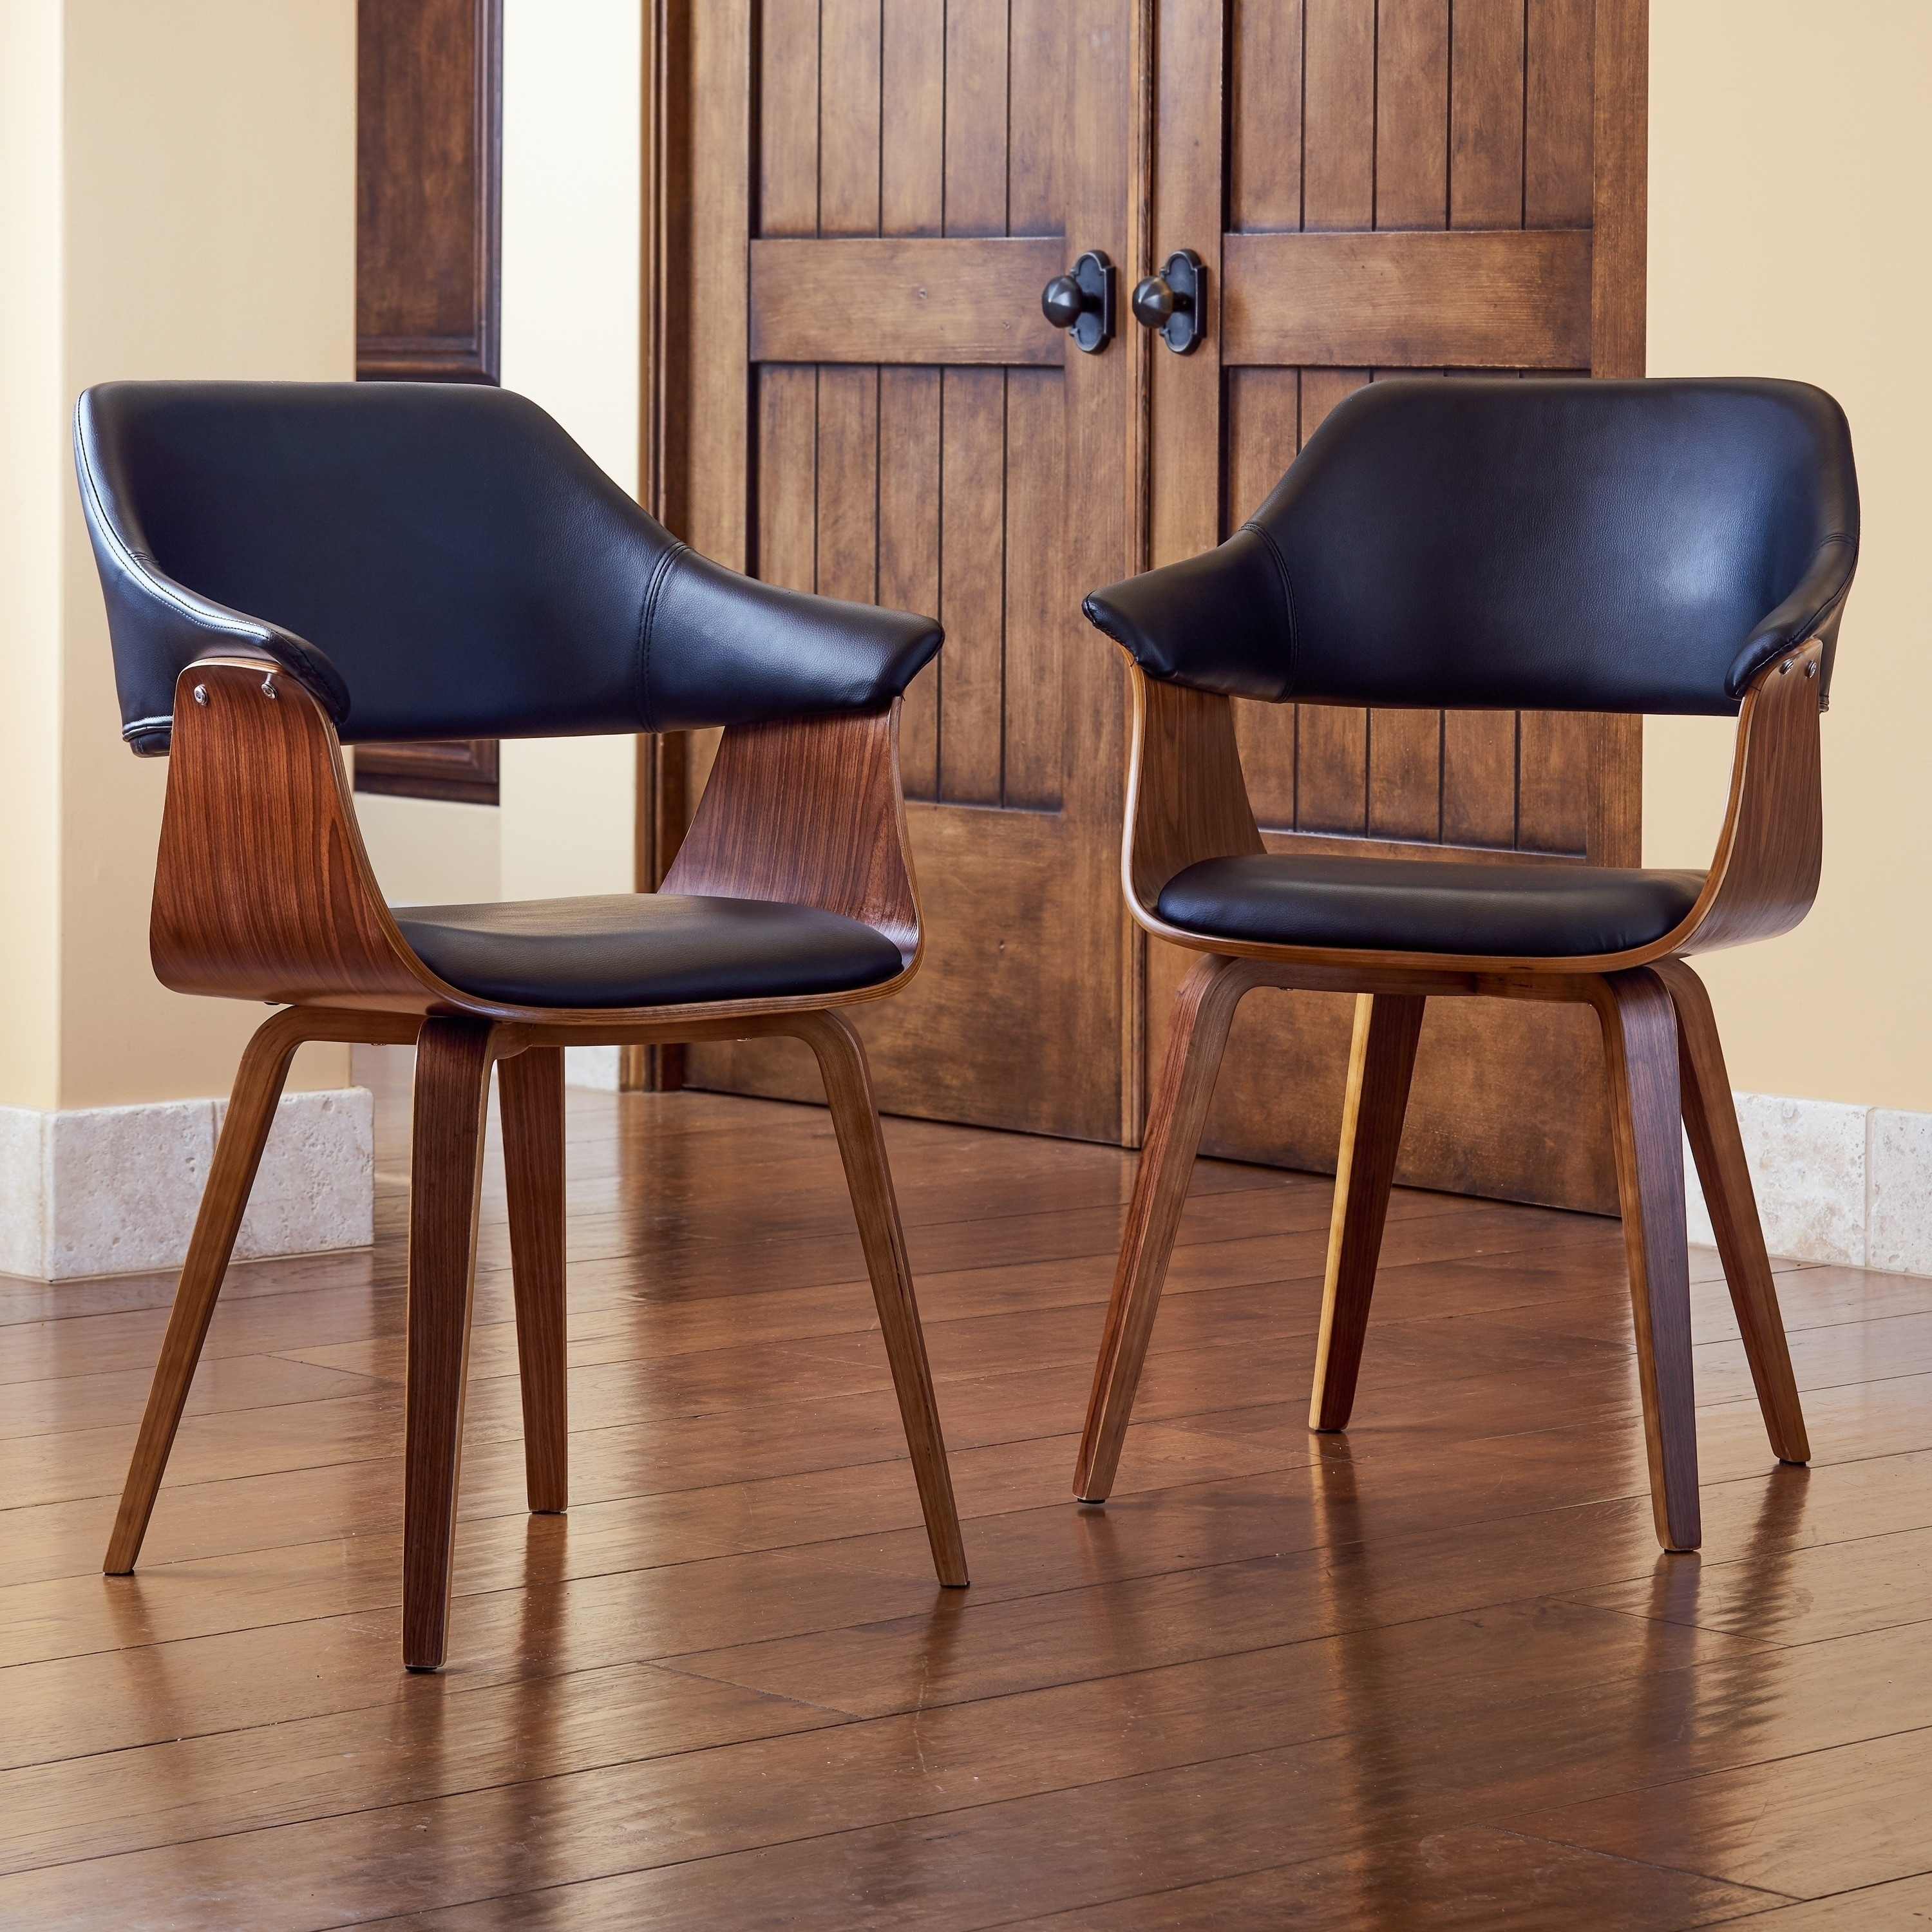 Shop corvus norah mid century modern accent chairs with wood legs set of 2 free shipping today overstock com 17925763